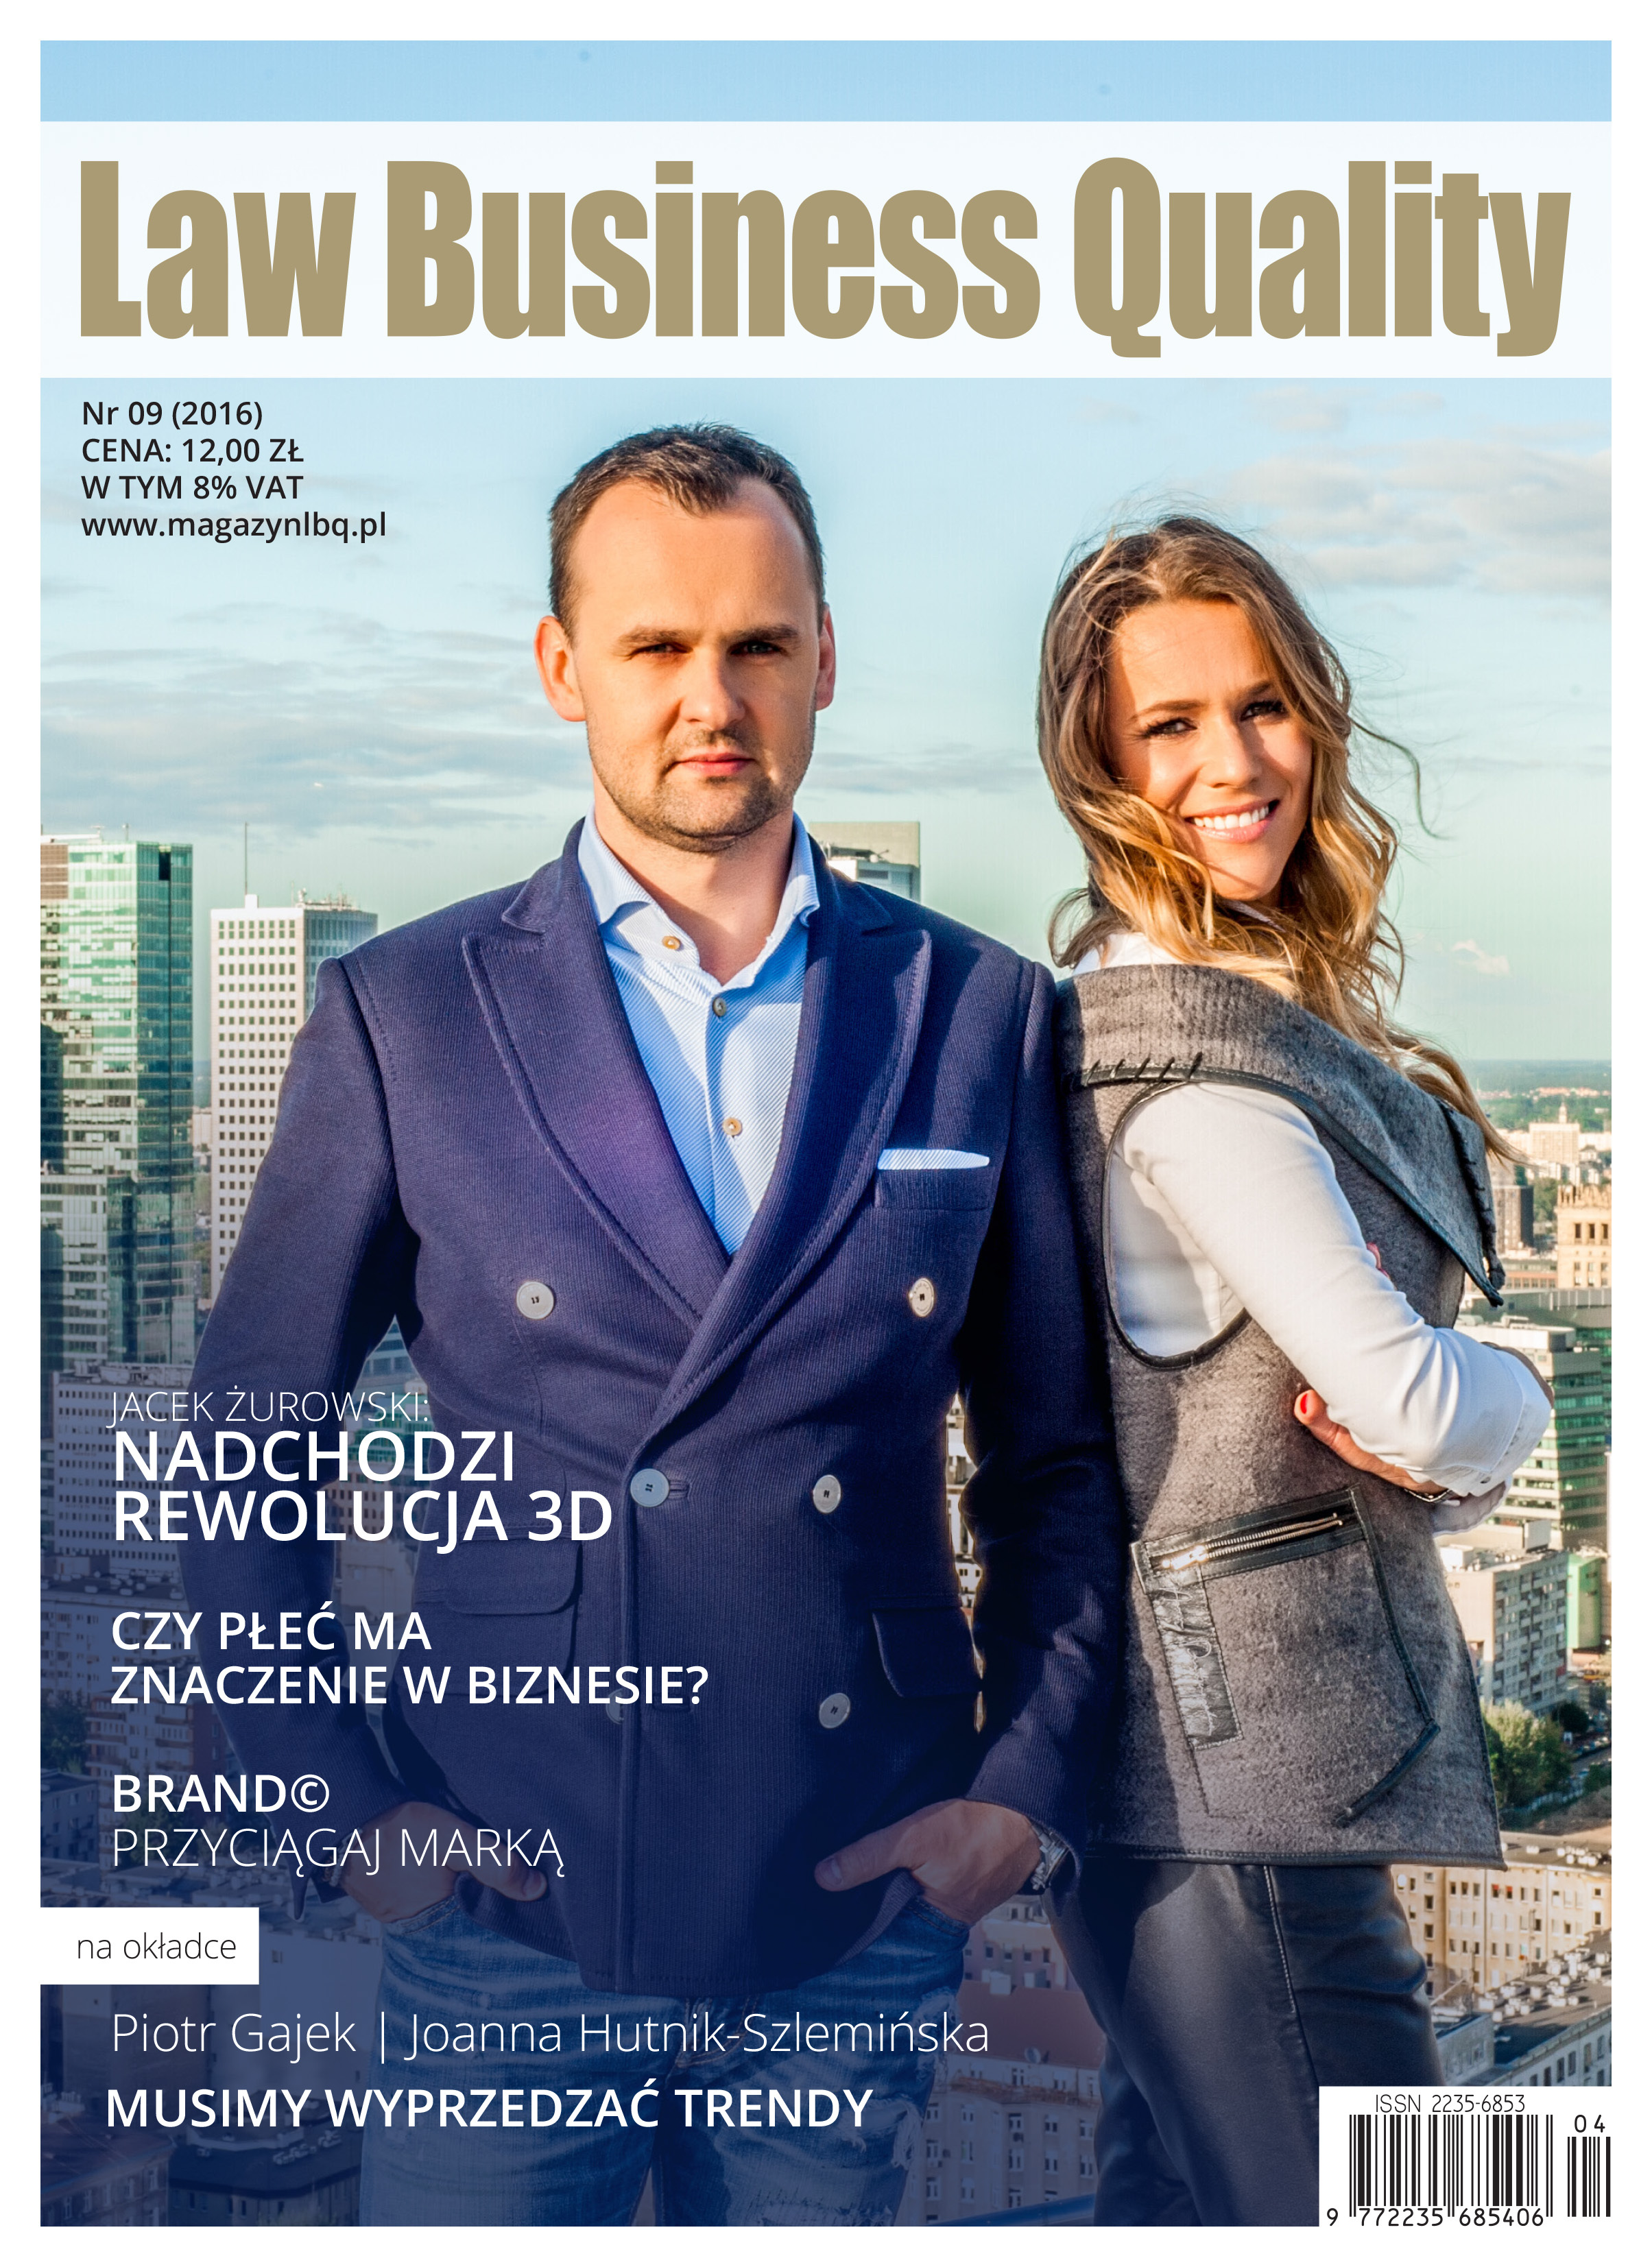 Law Busines Quality nr 09 / 2016